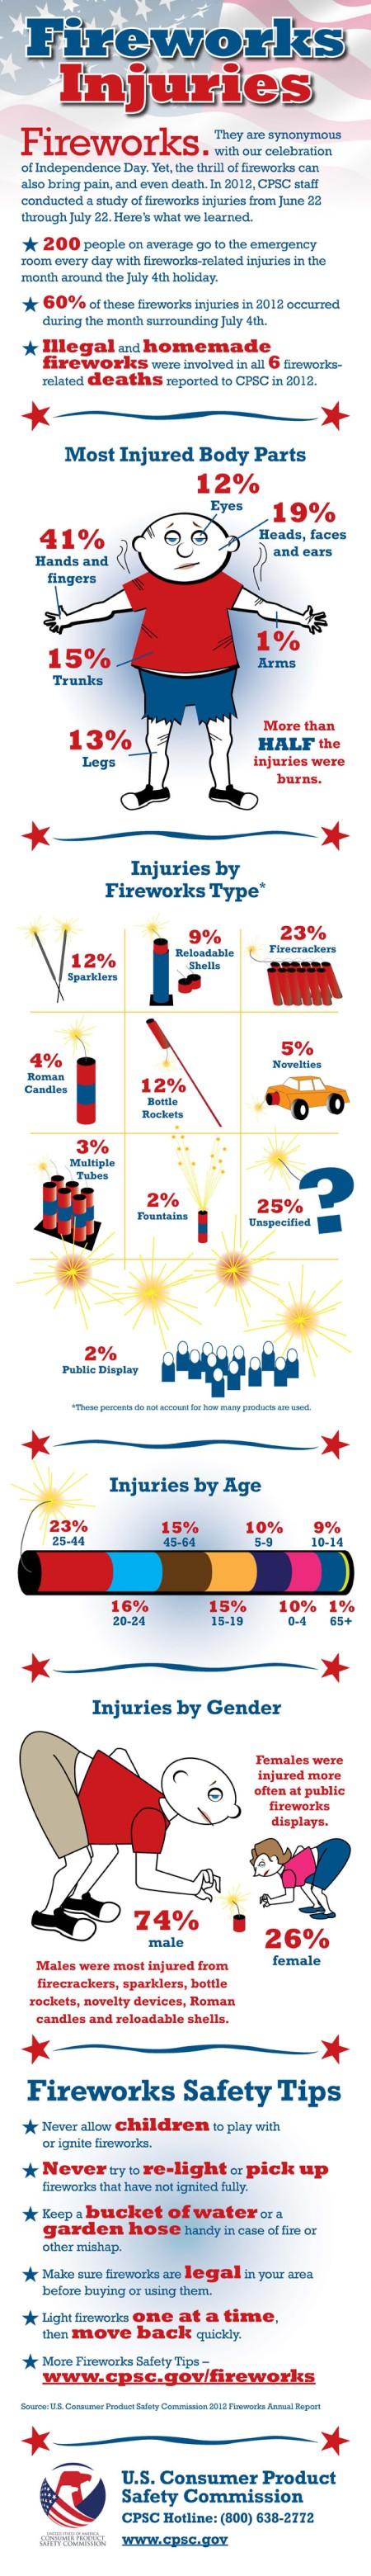 http://www.cpsc.gov/Safety-Education/Safety-Education-Centers/Fireworks/